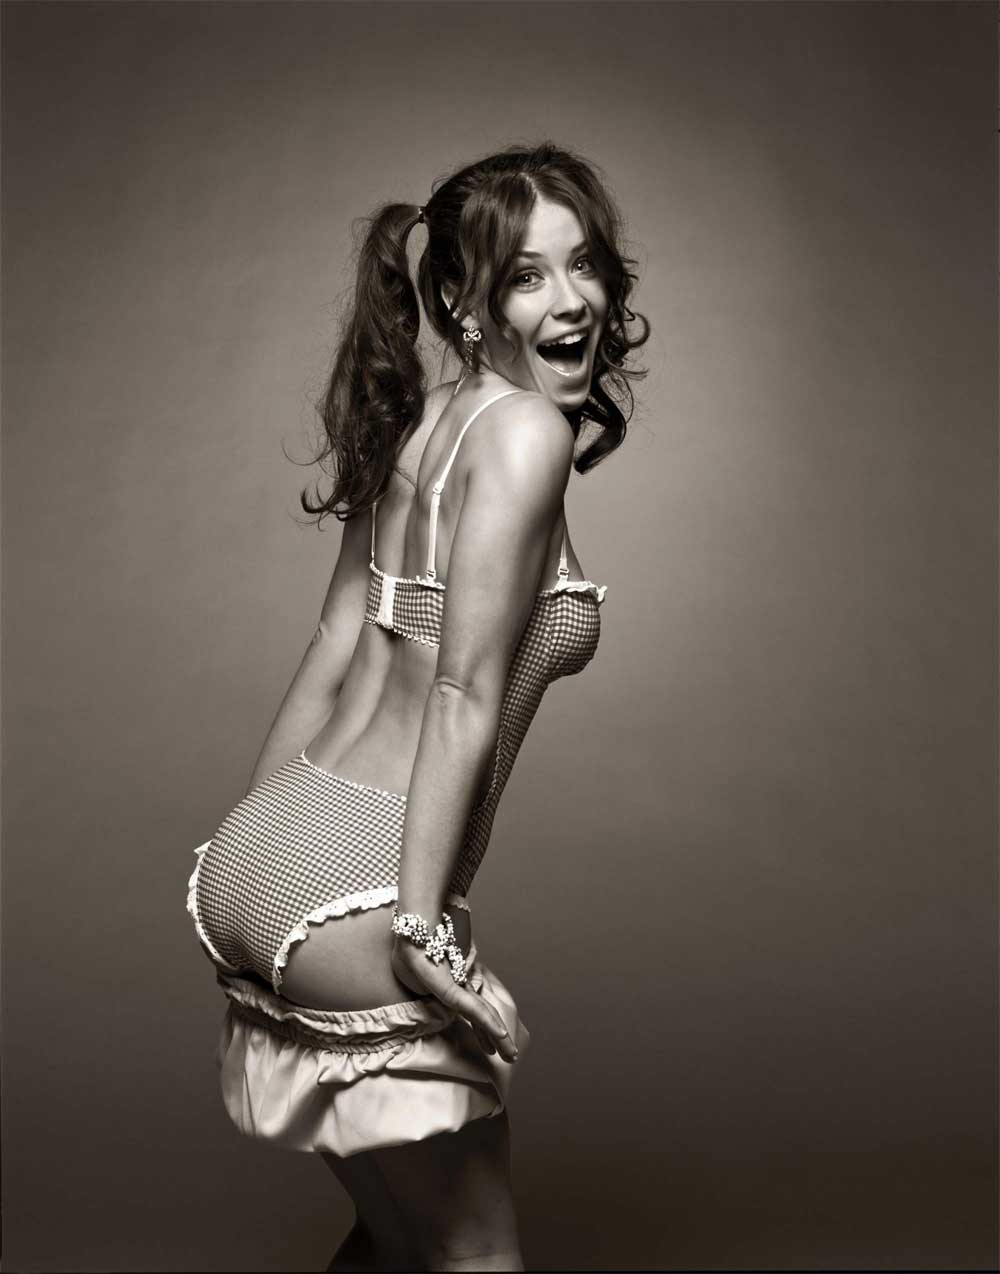 Wallpaper Evangeline Lilly jeune sexy Cinema Video